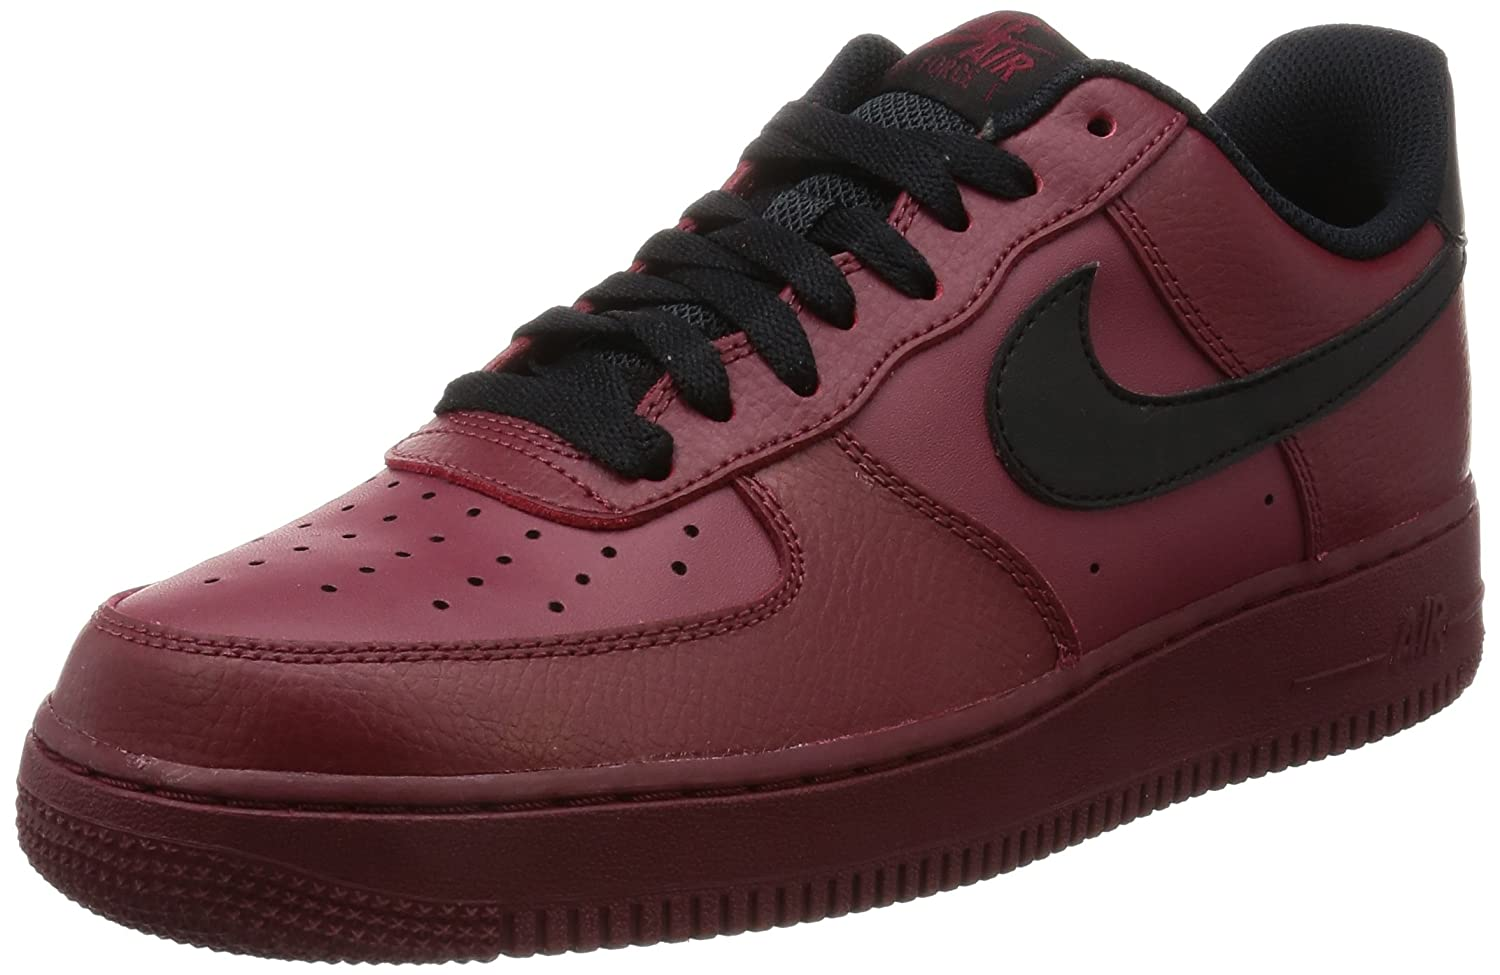 online store f9061 e153d Amazon.com   Nike Mens Air Force 1 Leather Athletic Basketball, Team Red Black,  Size 9.5   Basketball